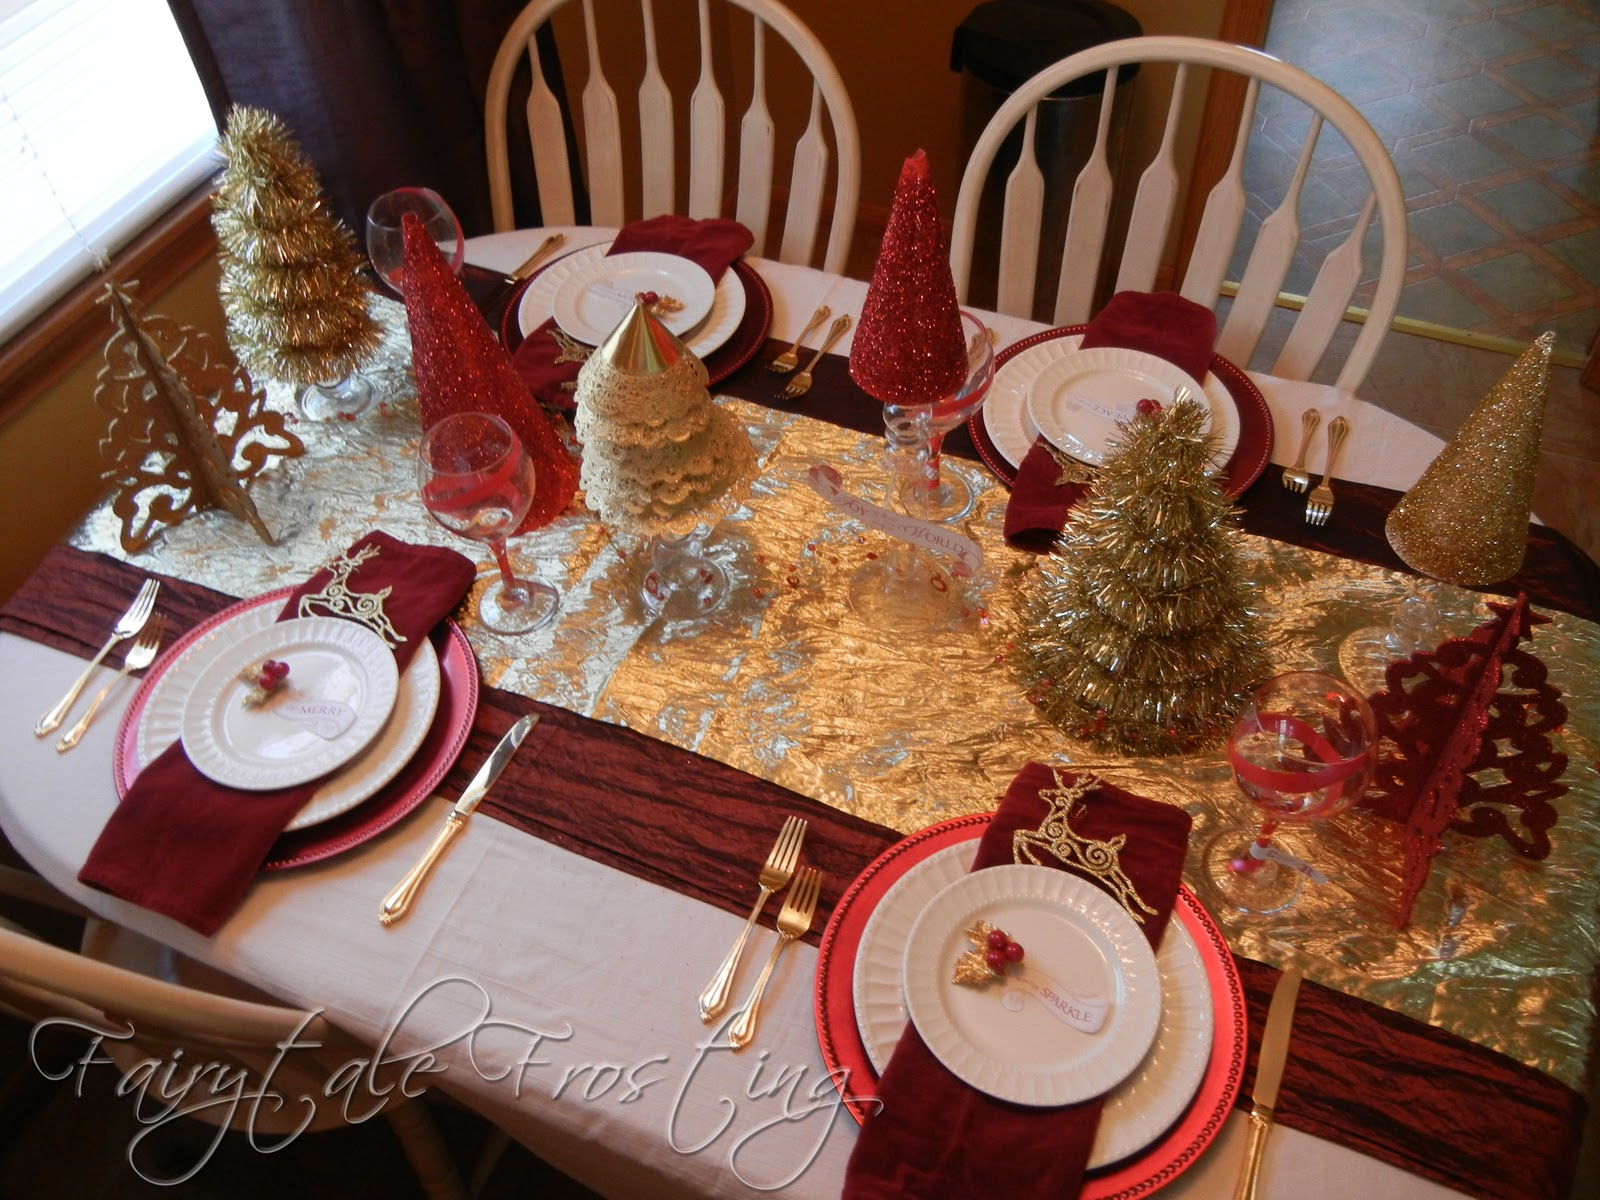 Fairytale frosting red white and gold holiday table